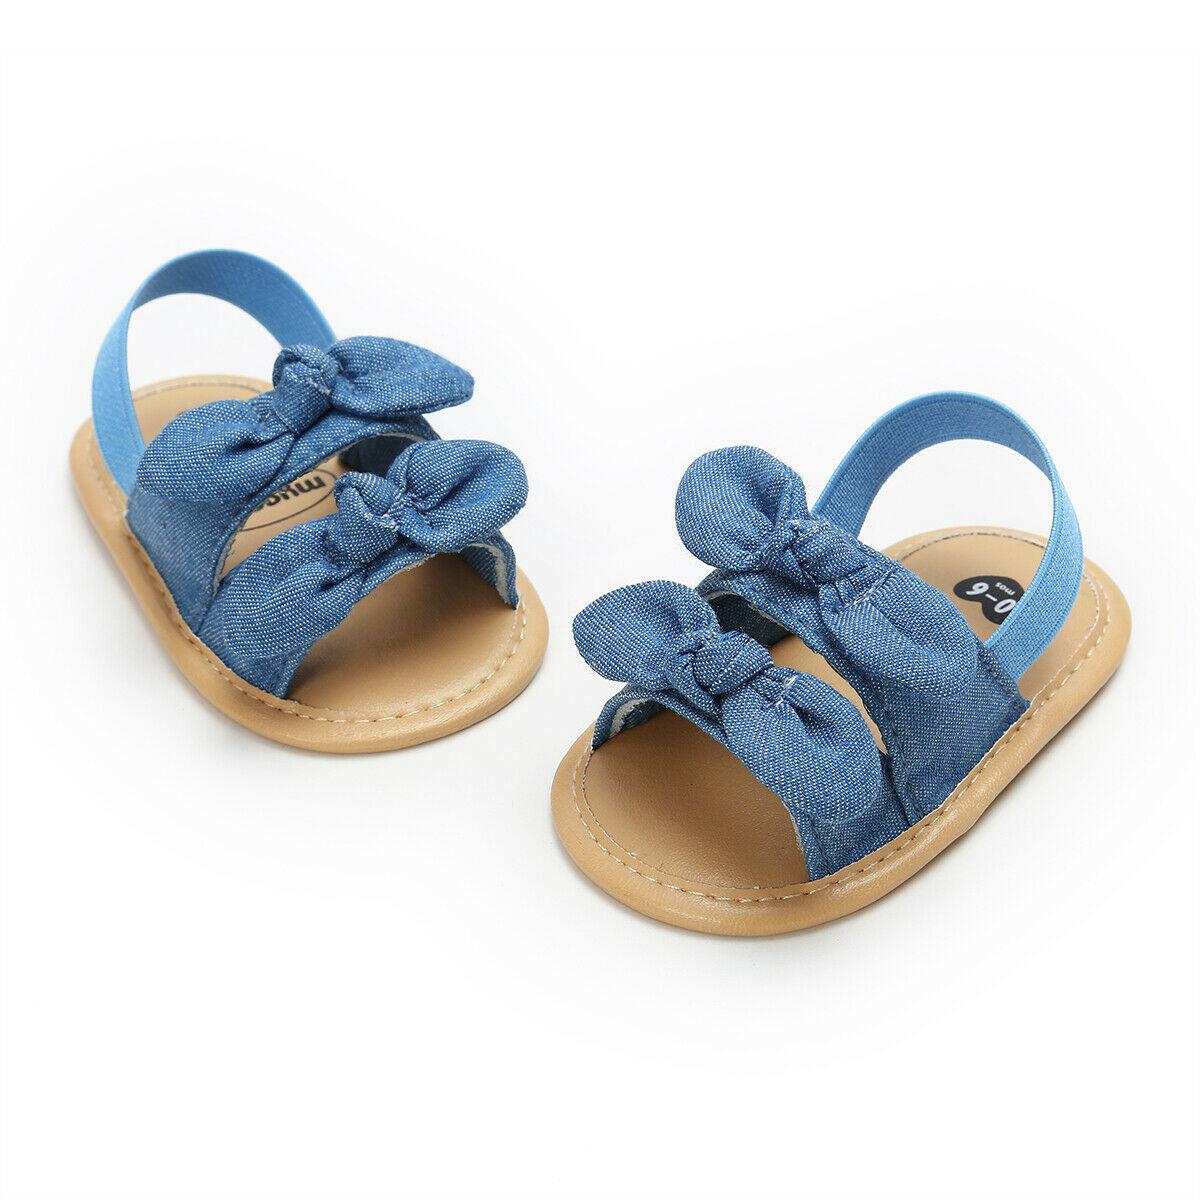 Emmababy 2019 New Brand Kid Toddler Baby Girl Sandals Party Princess Sandles Summer Beach Shoes